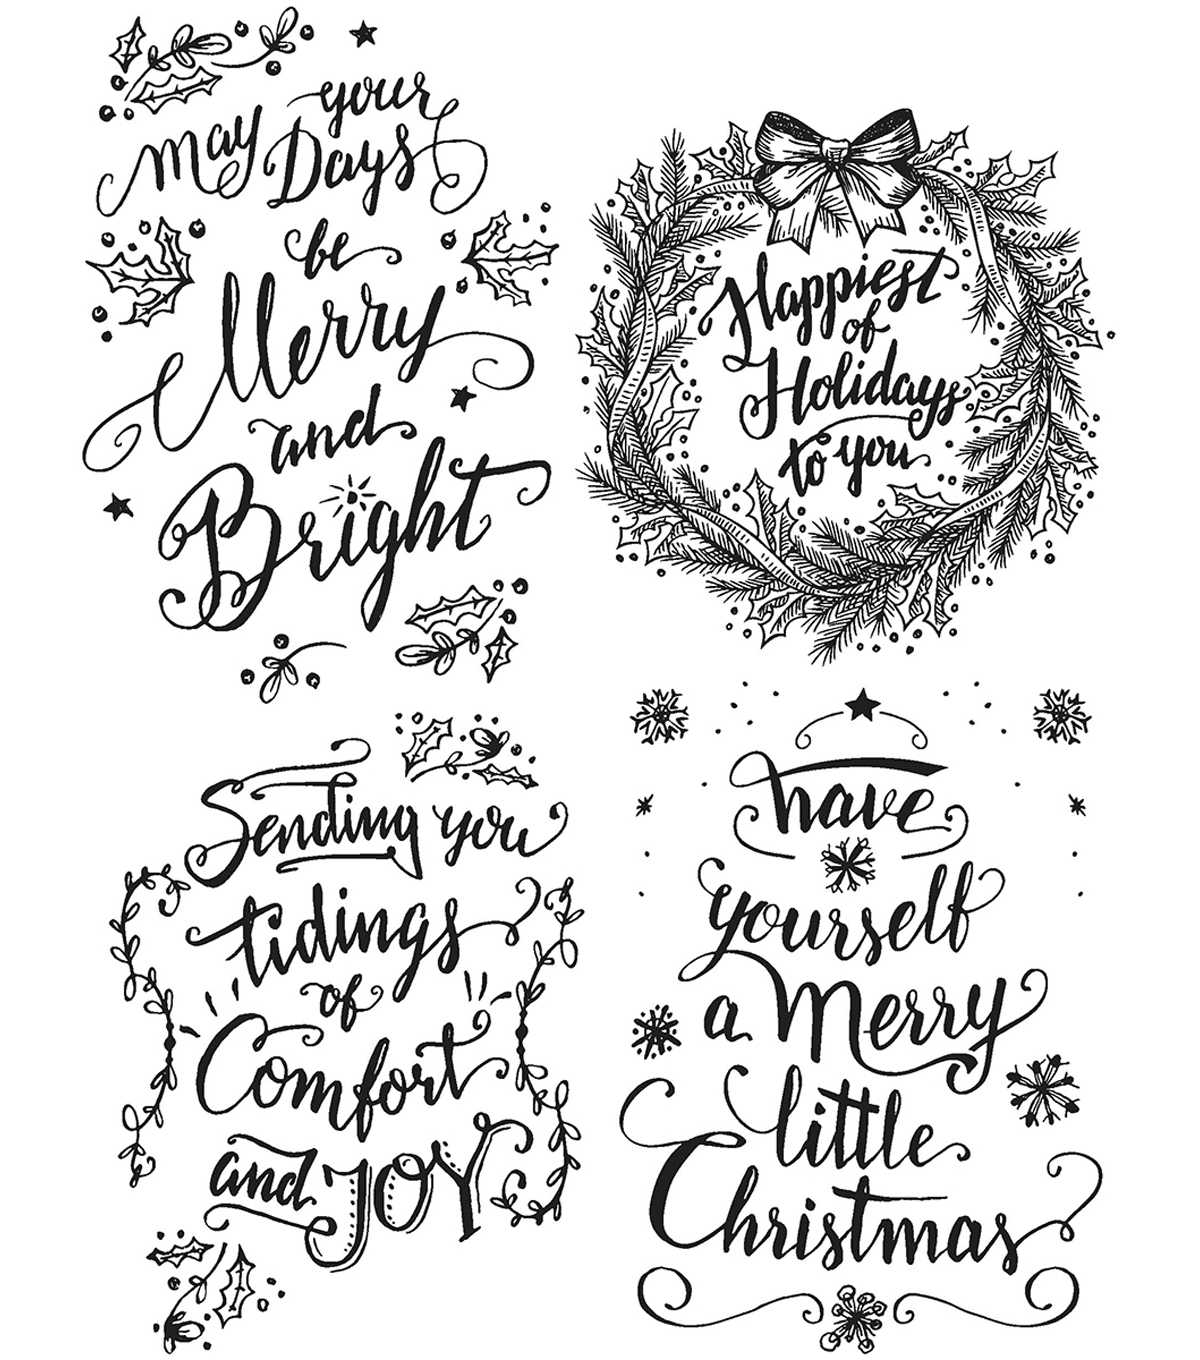 Tim Holtz Cling Stamps 7\u0022X8.5\u0022-Doodle Greetings #1